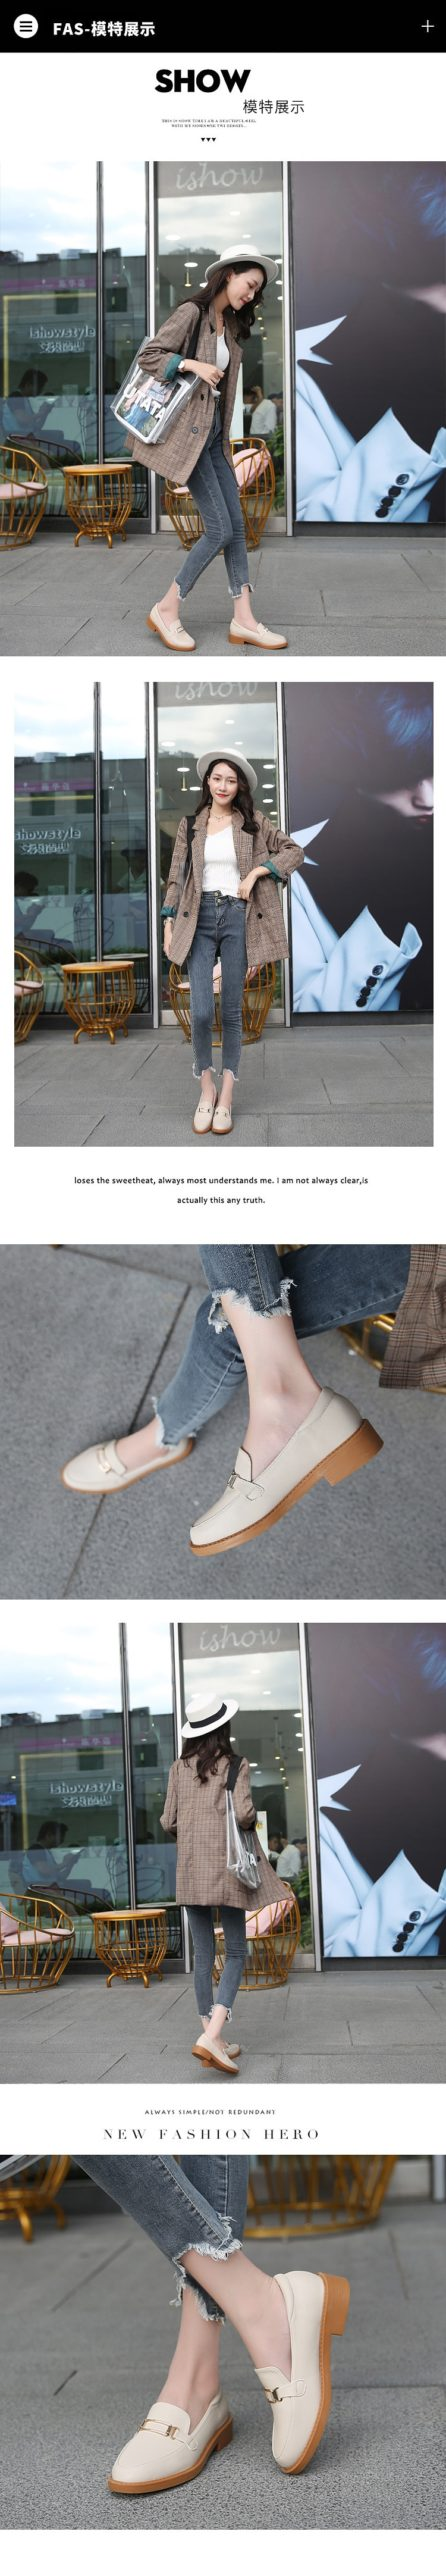 2021 European American fashion women's shoes retro loafer flate small leather shoes light-mouthed single shoes AB102